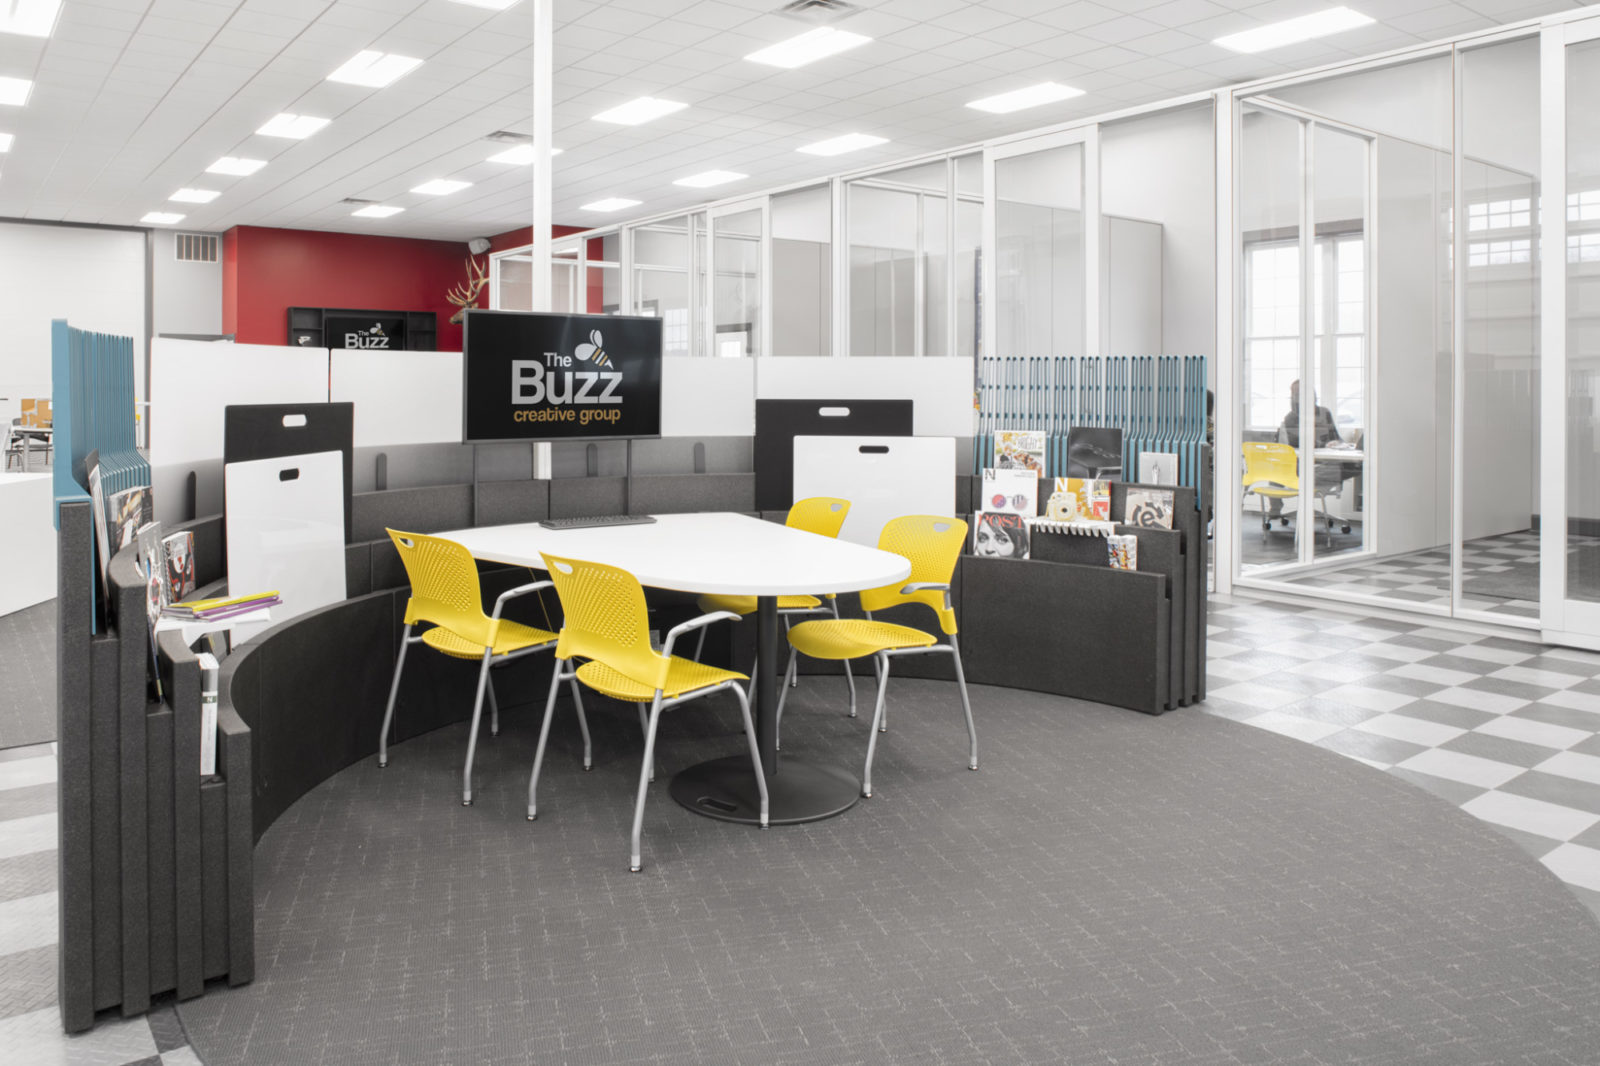 Buzz Creative, Pigott, Herman Miller Furniture, Metaform Portfolio, Meeting Space, Caper Chair, Creative Office